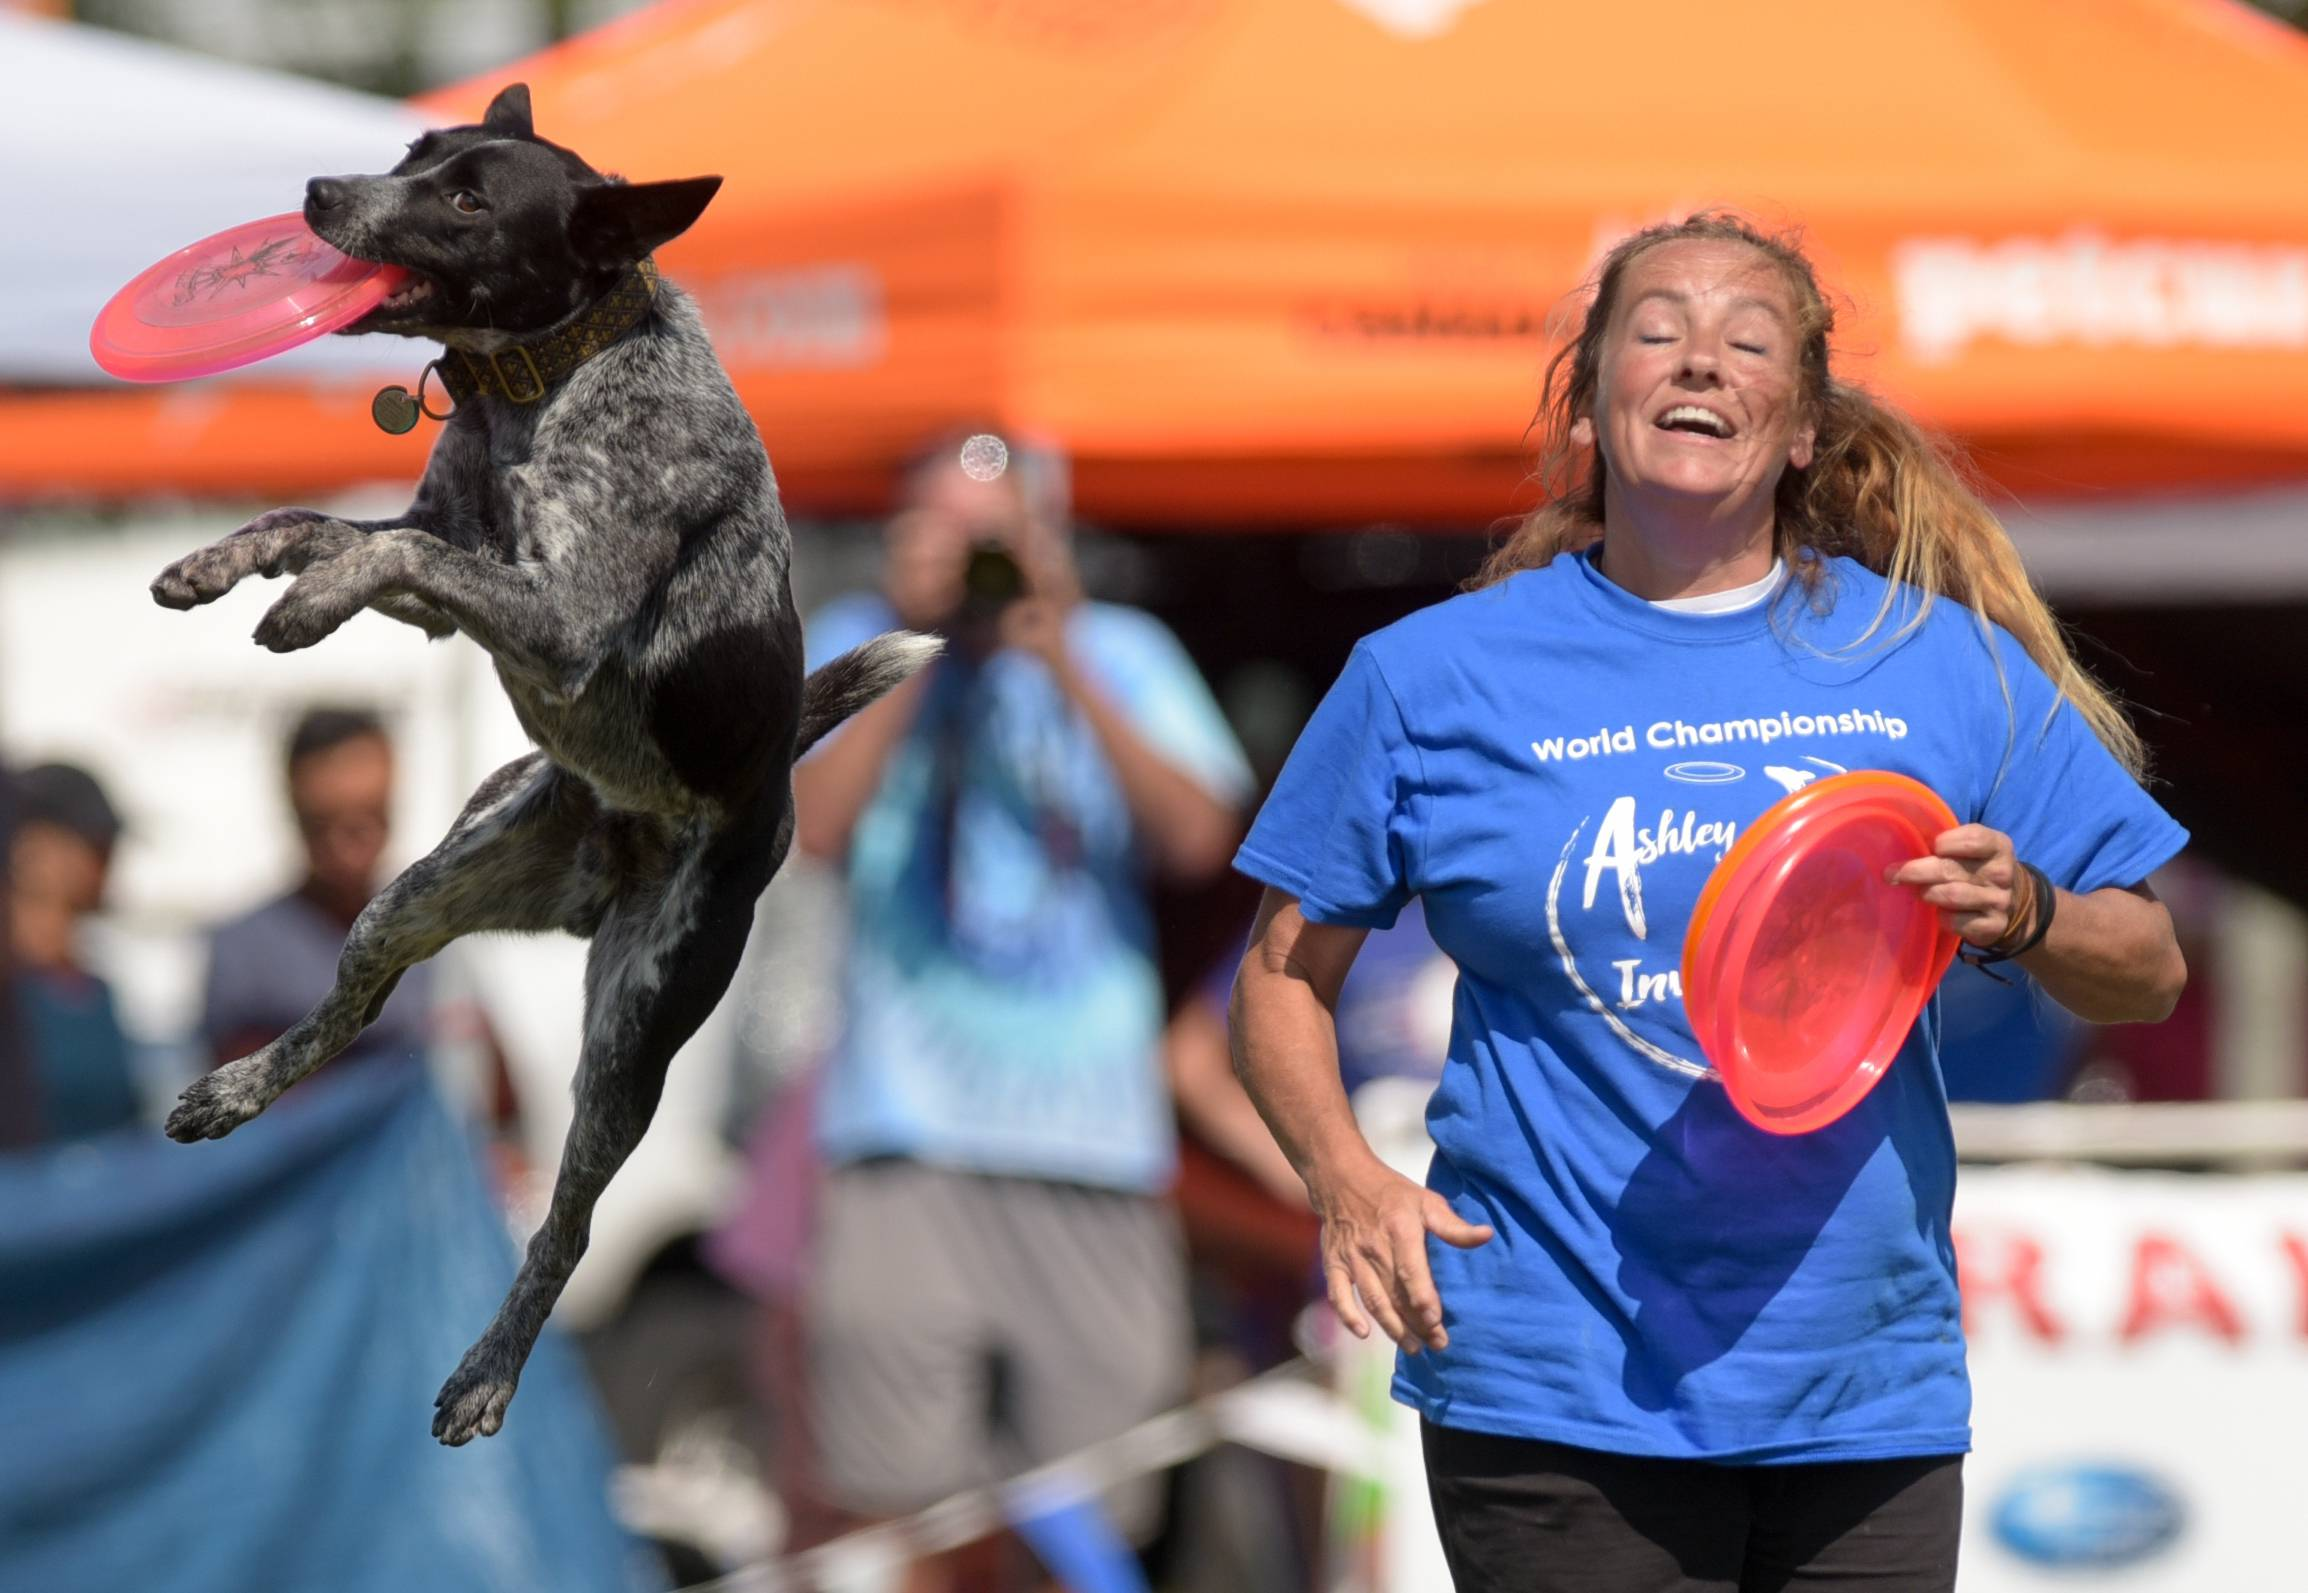 Tracy Custer of Missouri and her dog, Wing nut, compete Sunday during the 2017 Ashley Whippet K-9 Frisbee World Championships in Naperville.